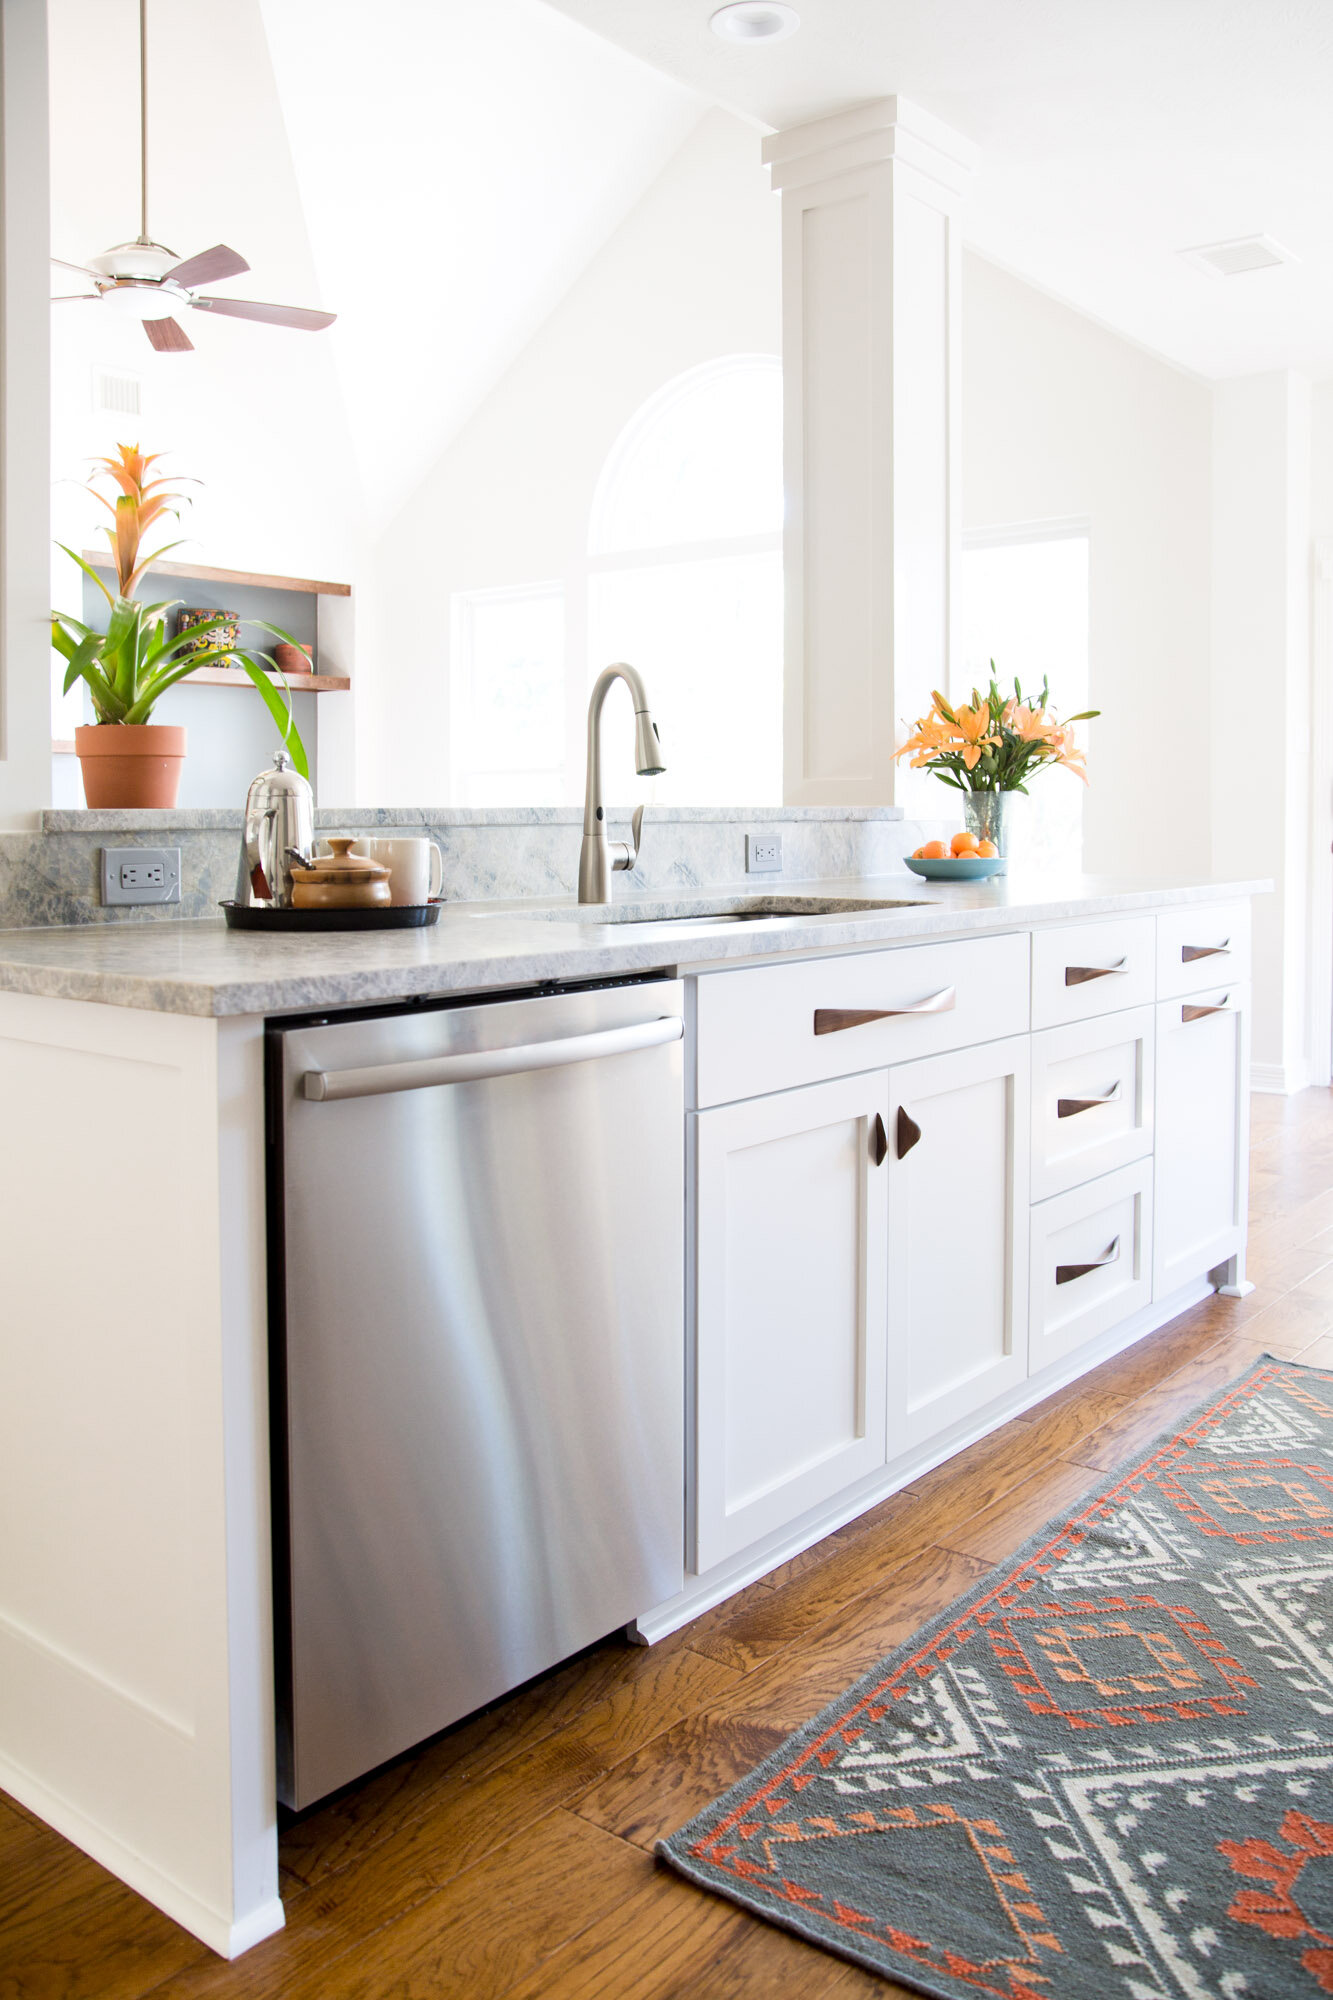 - How To Deal With Outlets And Light Switches On Backsplashes — DESIGNED